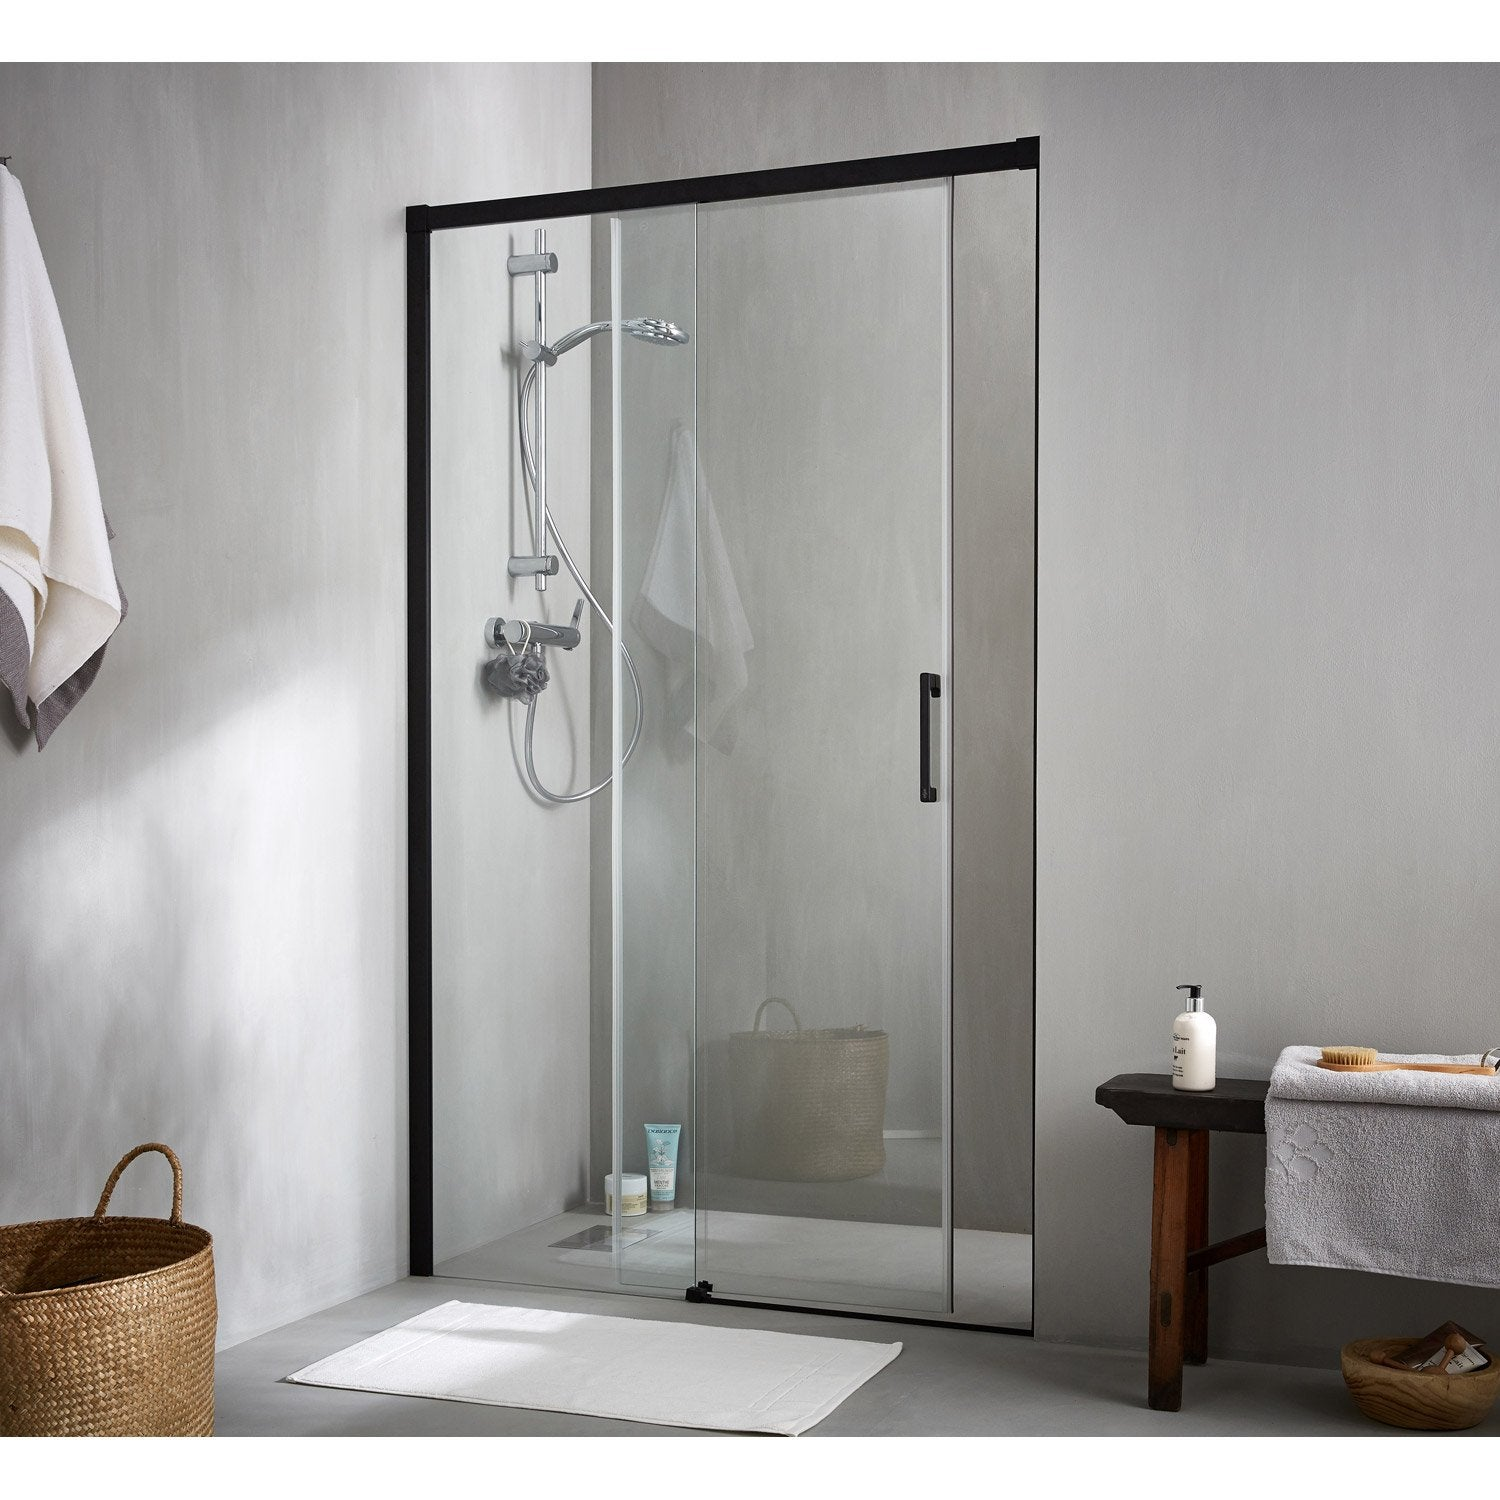 Porte de douche coulissante 120 cm transparent remix - Porte coulissante encastrable castorama ...